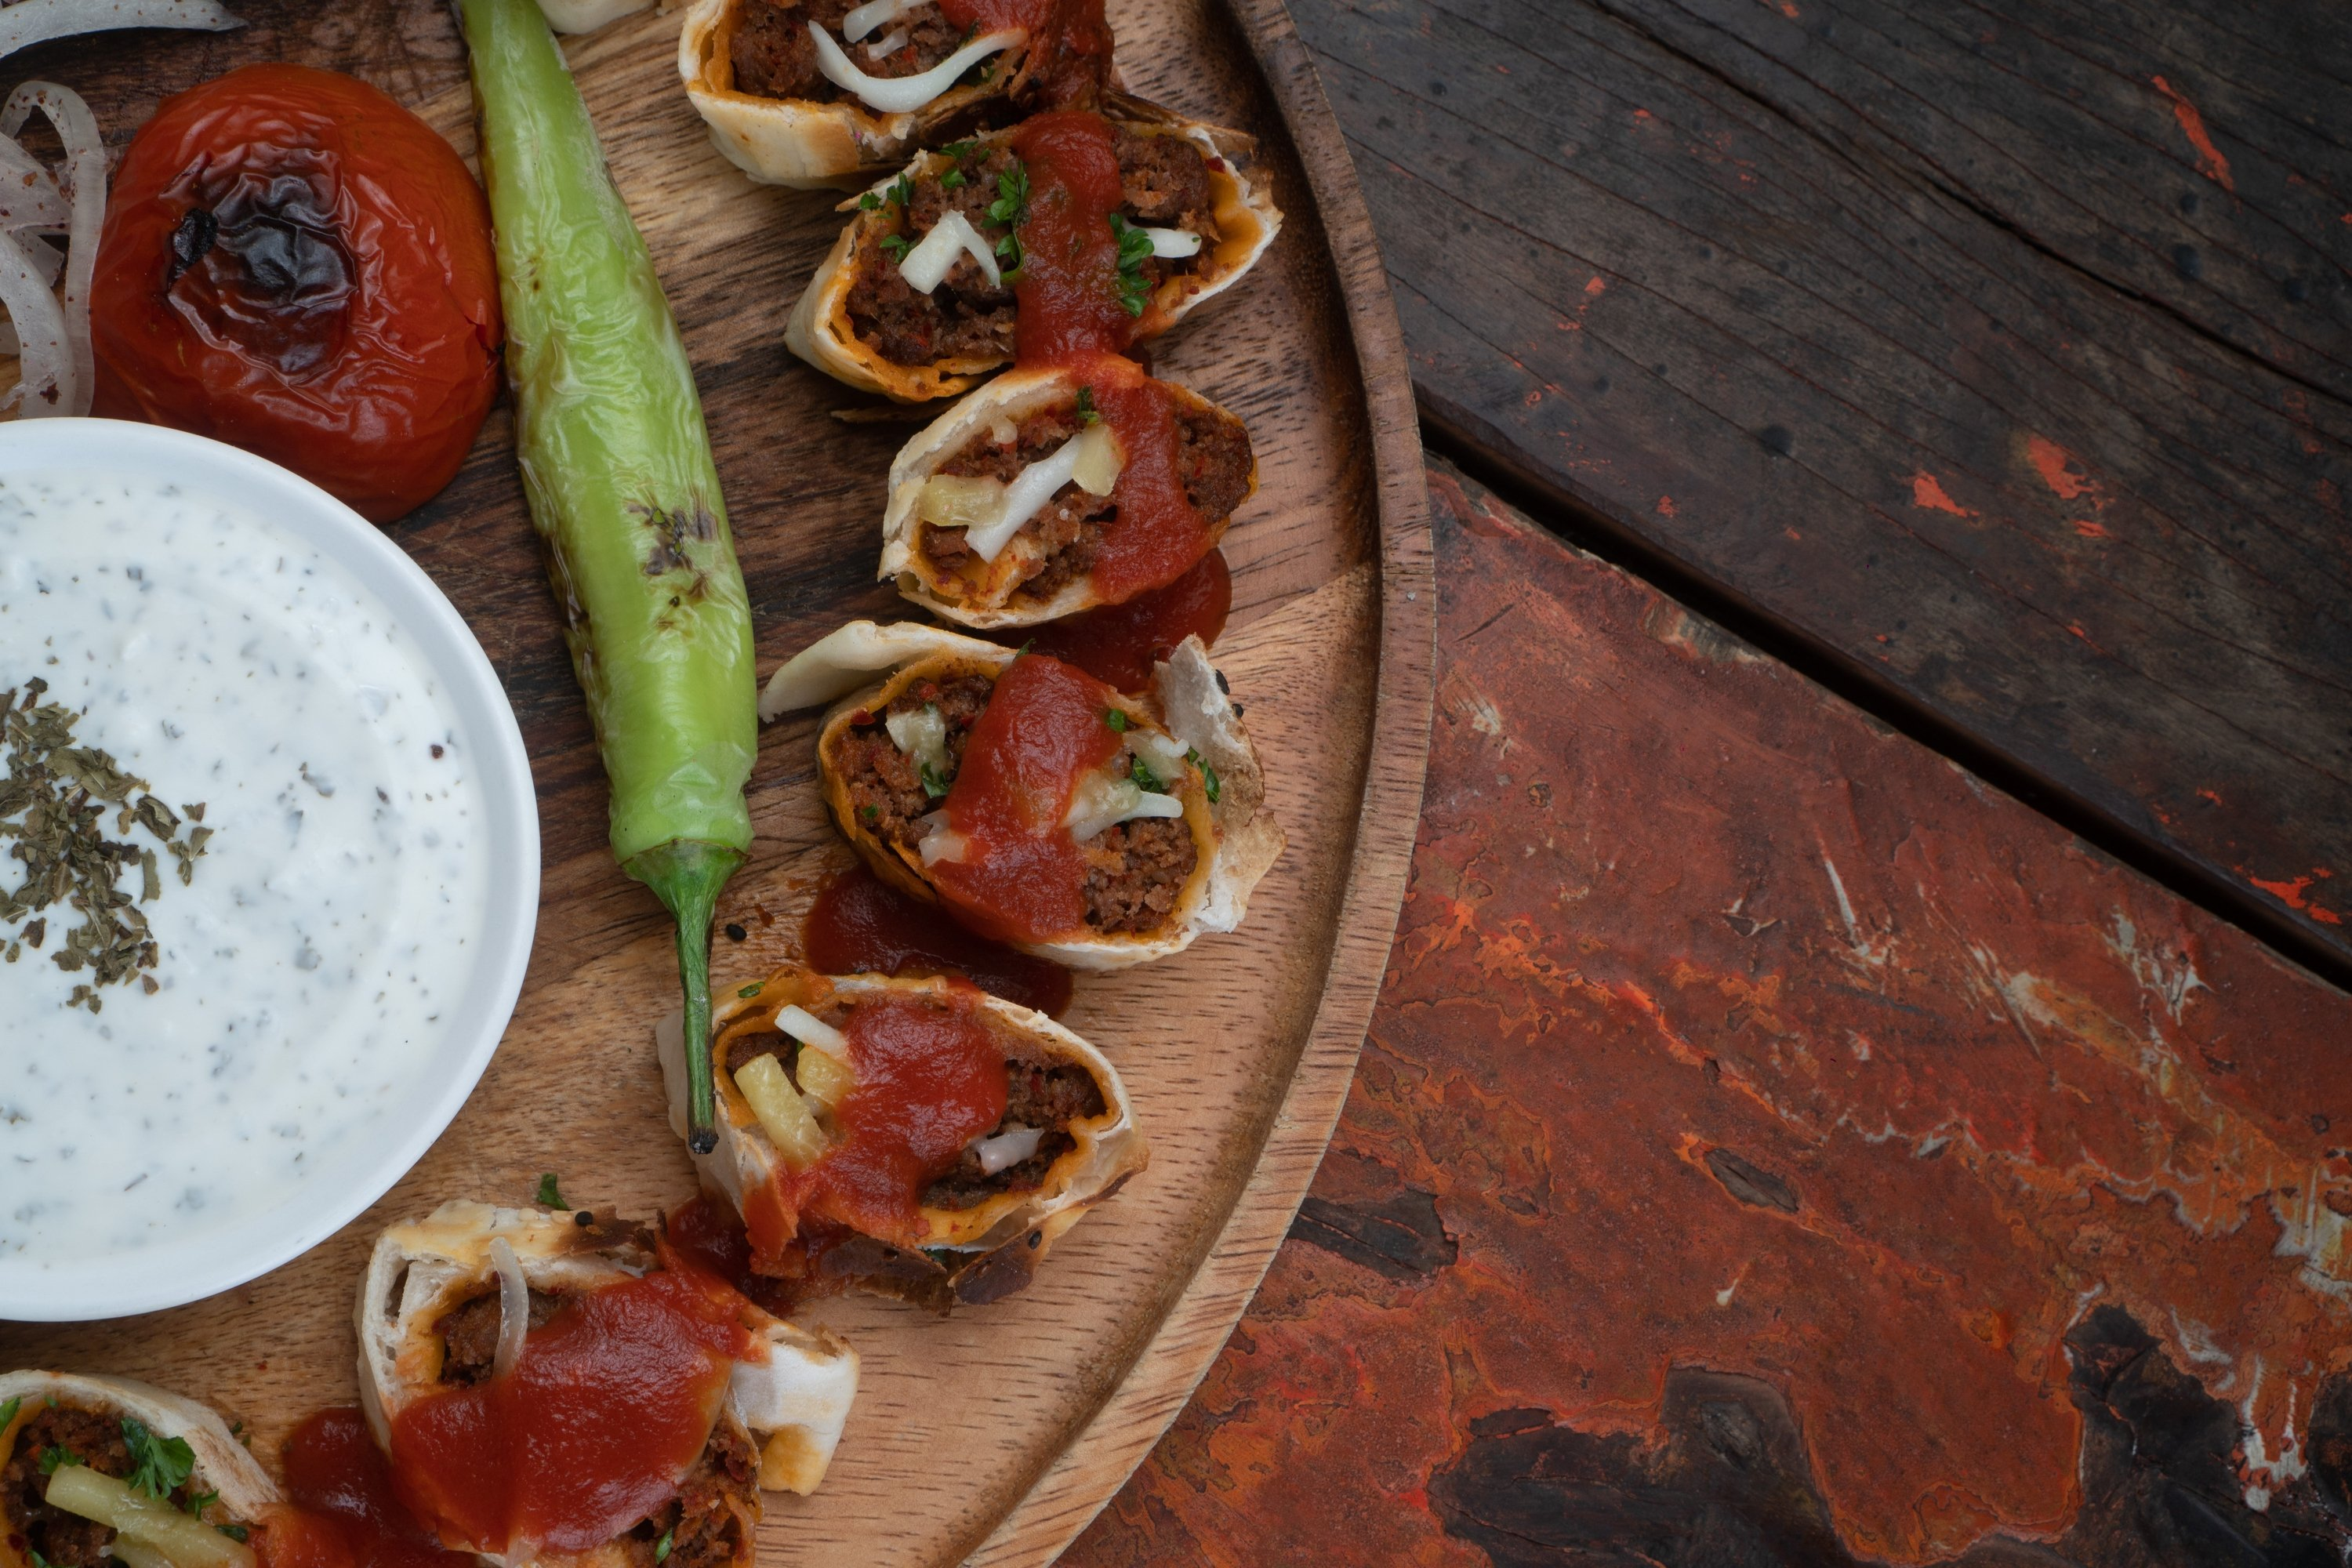 Beyti kebab is wrapped in lavash, a tortilla-like bread, and cut into bite-sized pieces. (Shutterstock Photo)